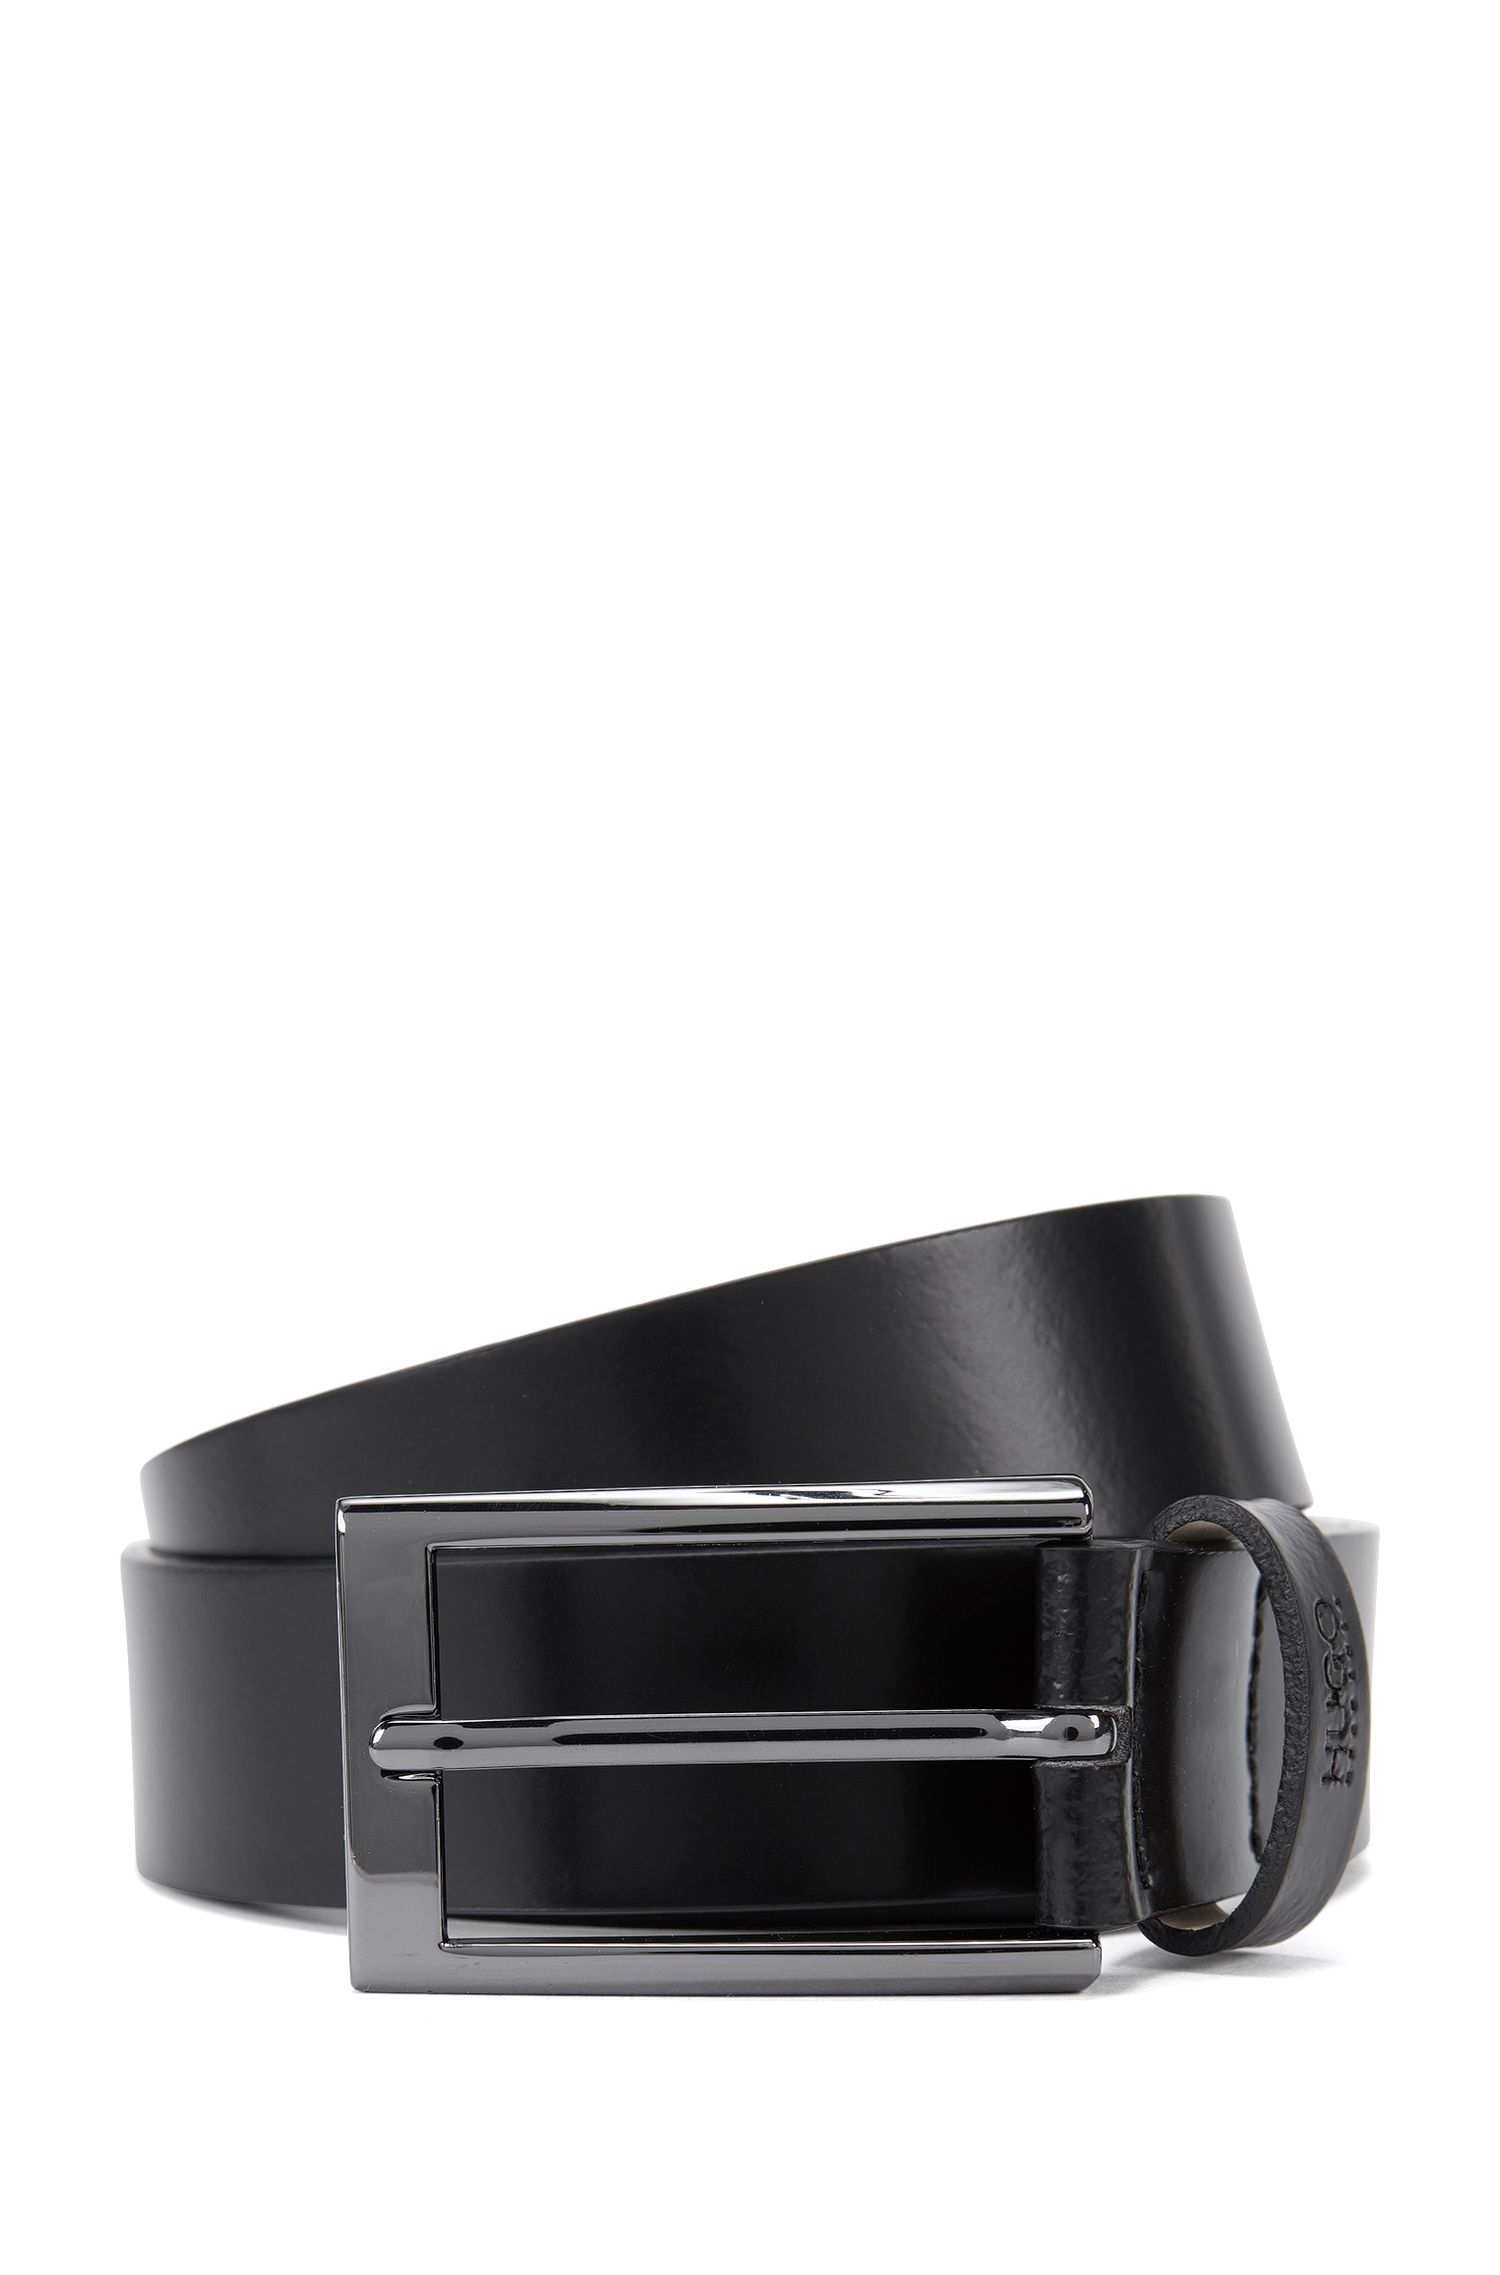 Leather belt with gunmetal hardware